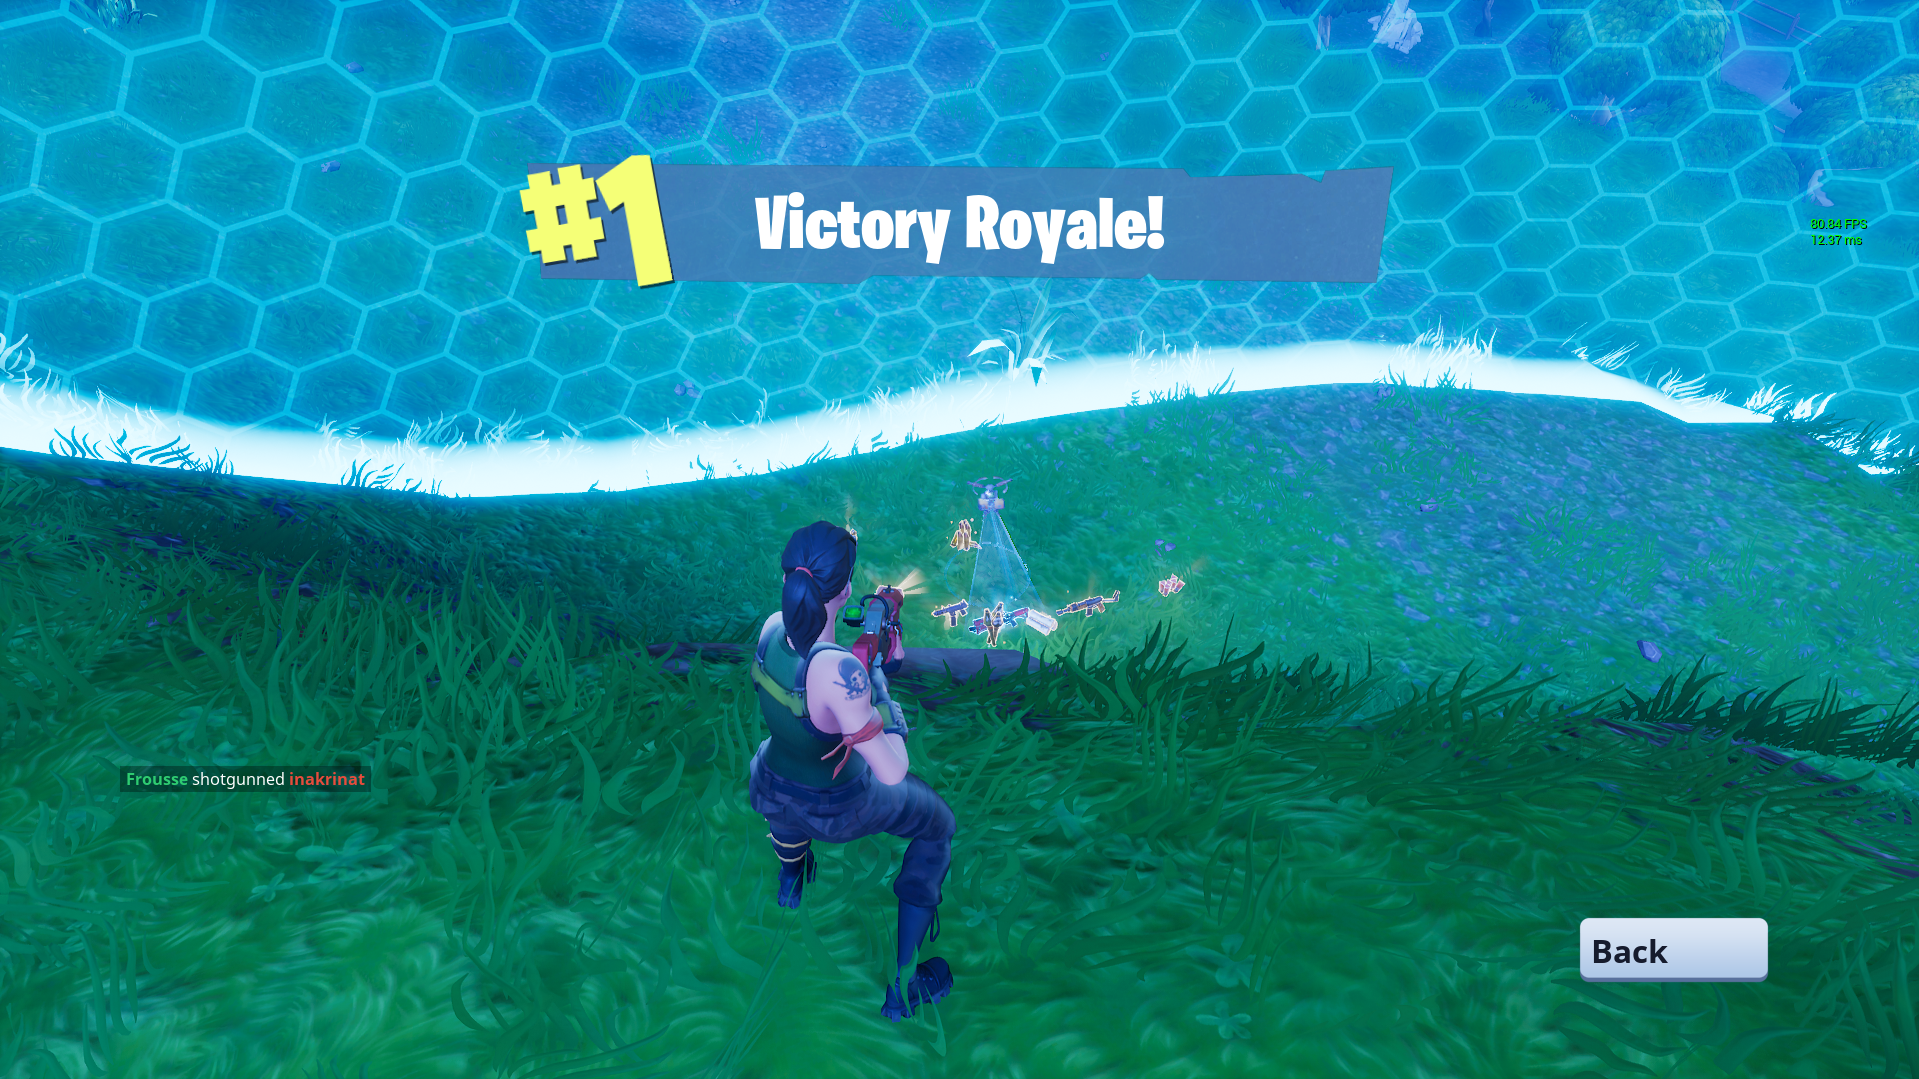 Best Game Free Victory Royale Png Image image #47389